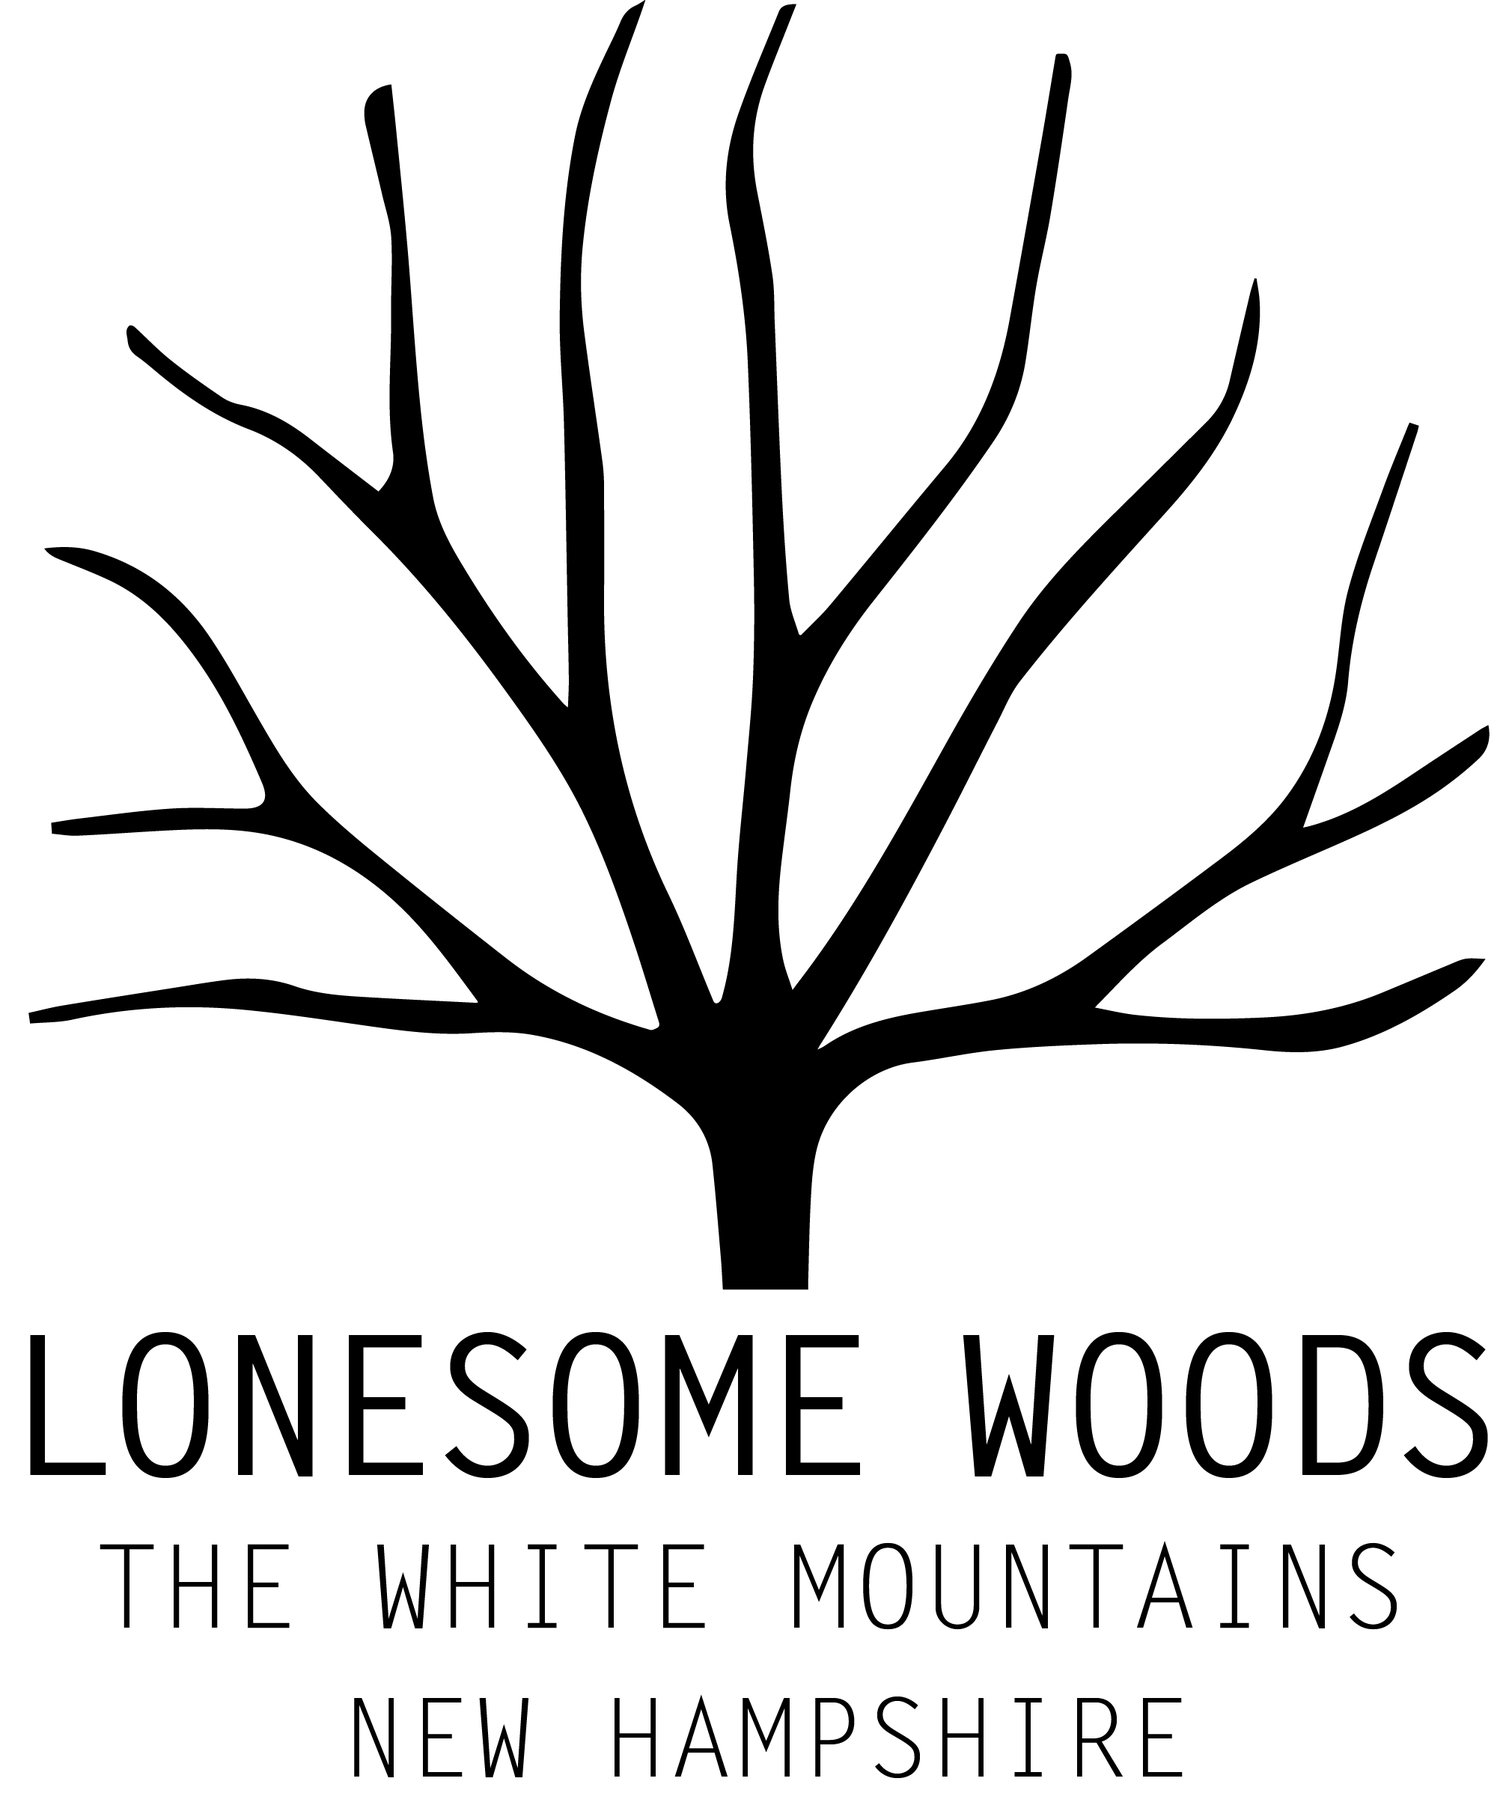 Lonesome Woods